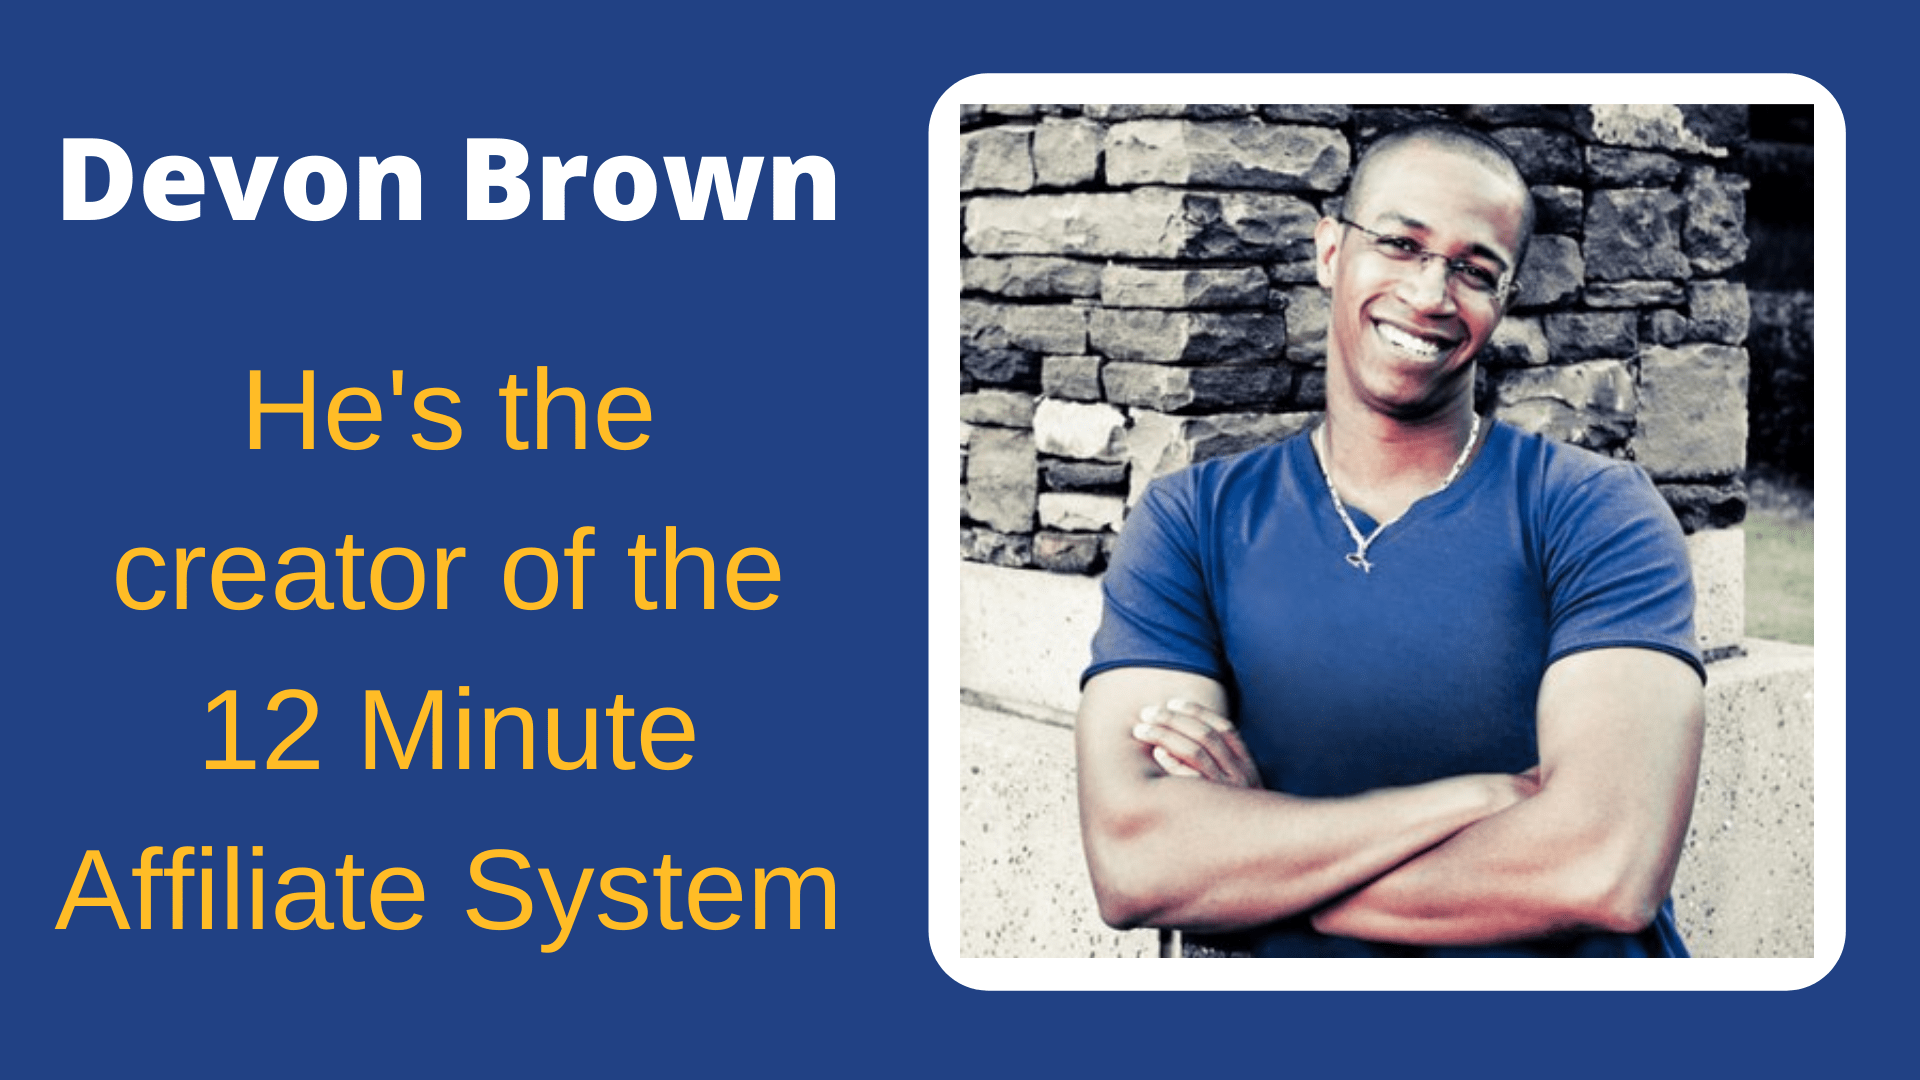 Creator of the 12 Minute Affiliate System